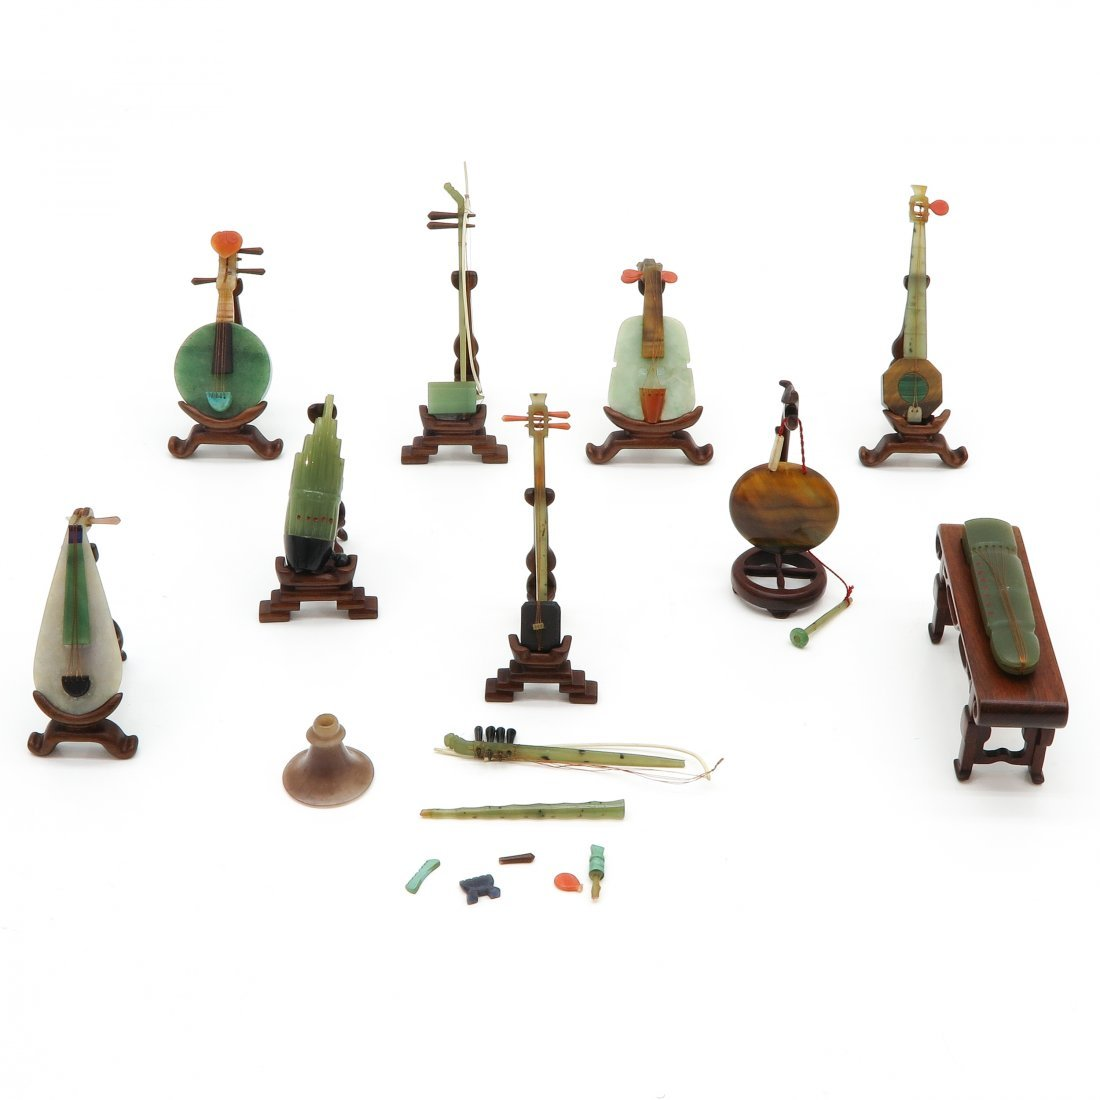 Chinese Carved Jade Musical Instrument Sculptures